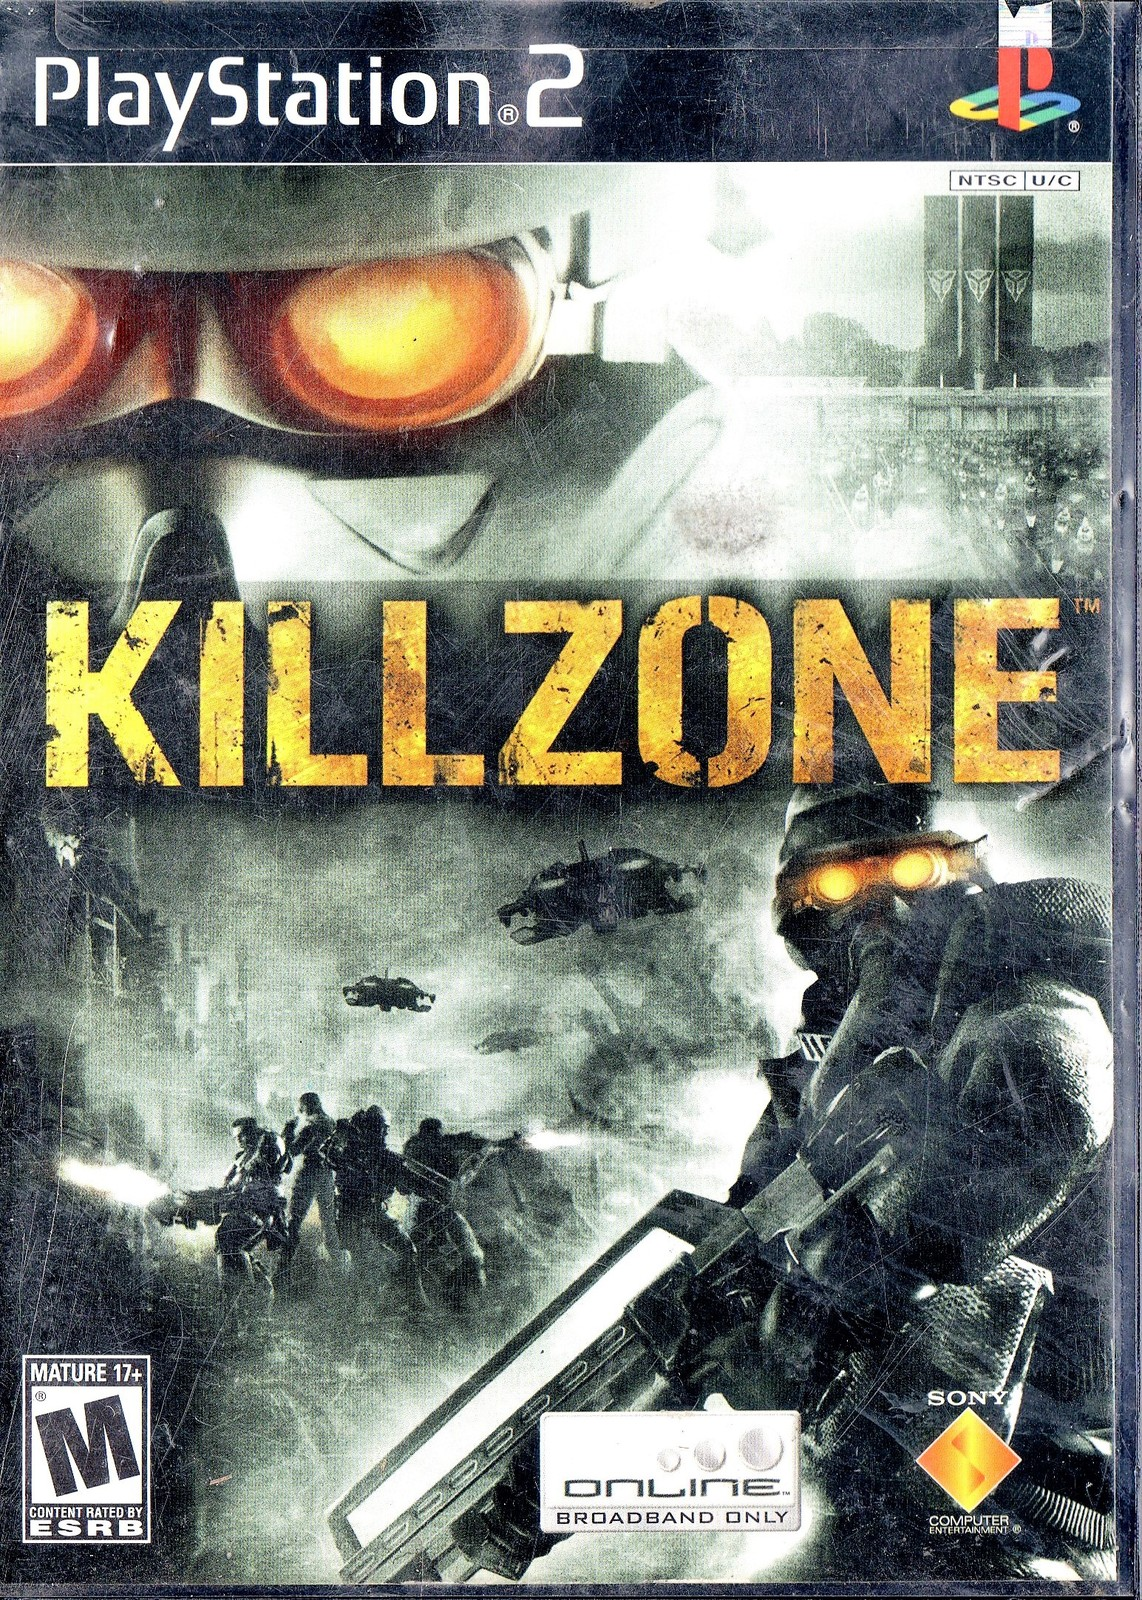 PlayStation 2 - Killzone